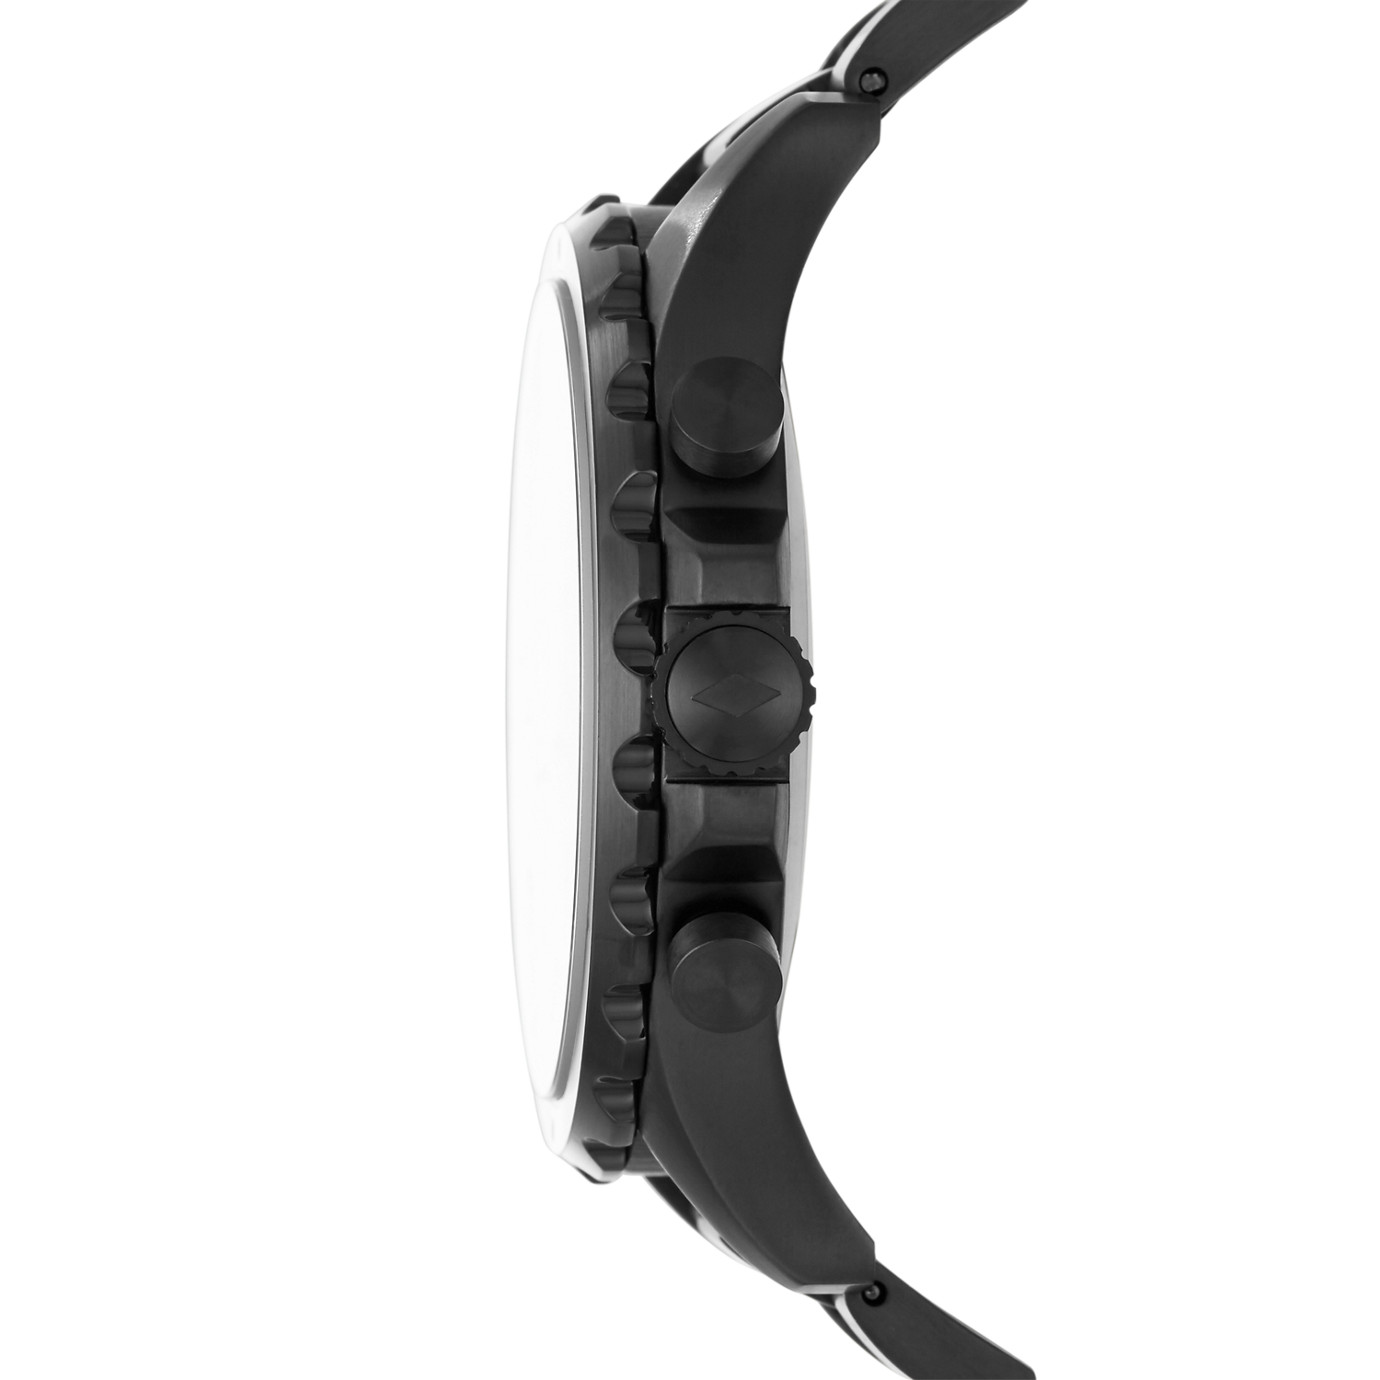 Fossil Nate Black Stainless Steel Hybrid Smartwatch